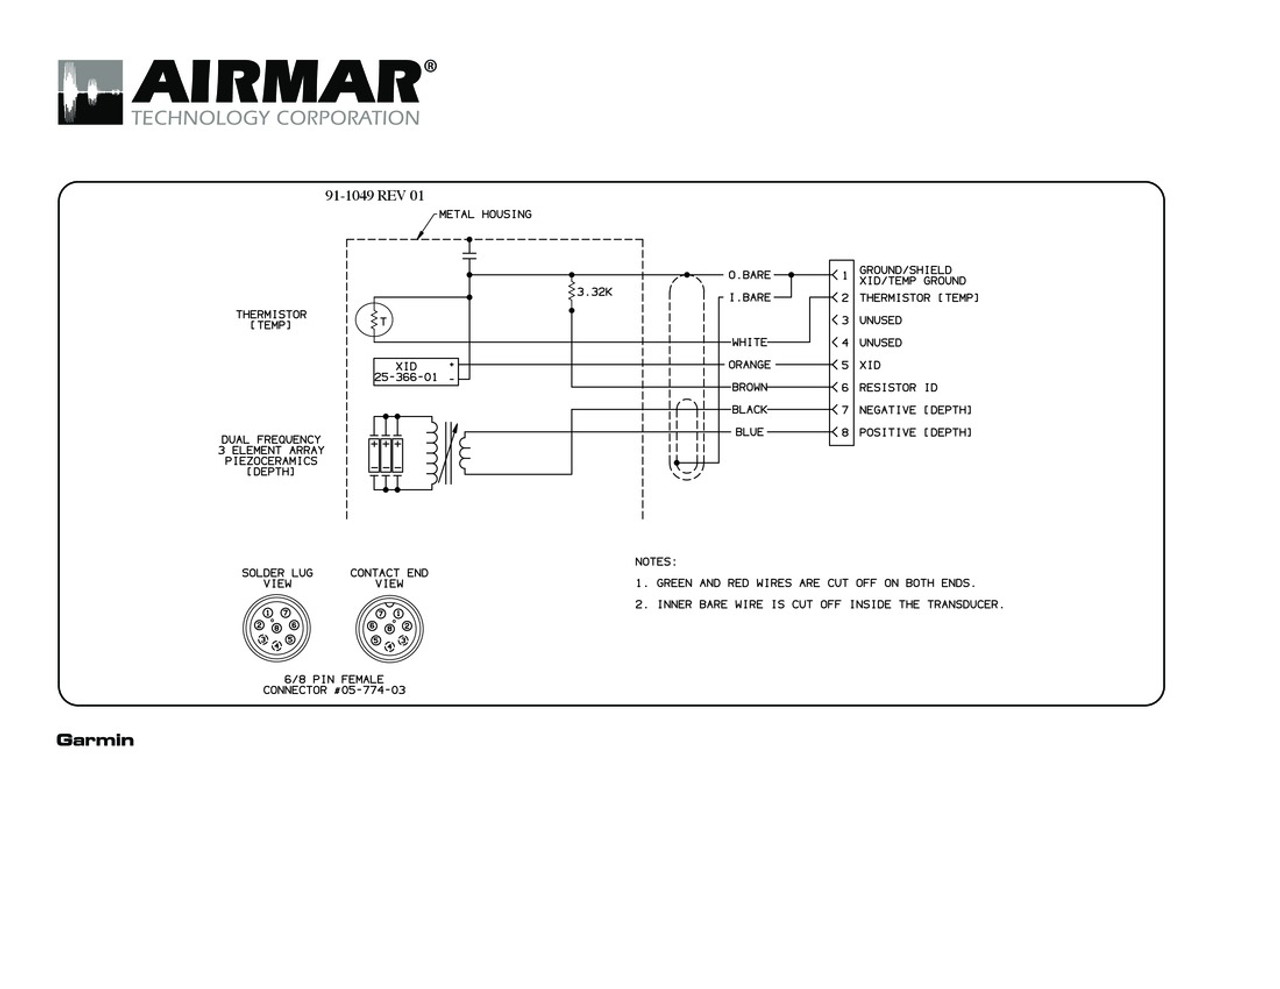 Airmar Wiring Diagram Garmin B164 8 Pin  D T